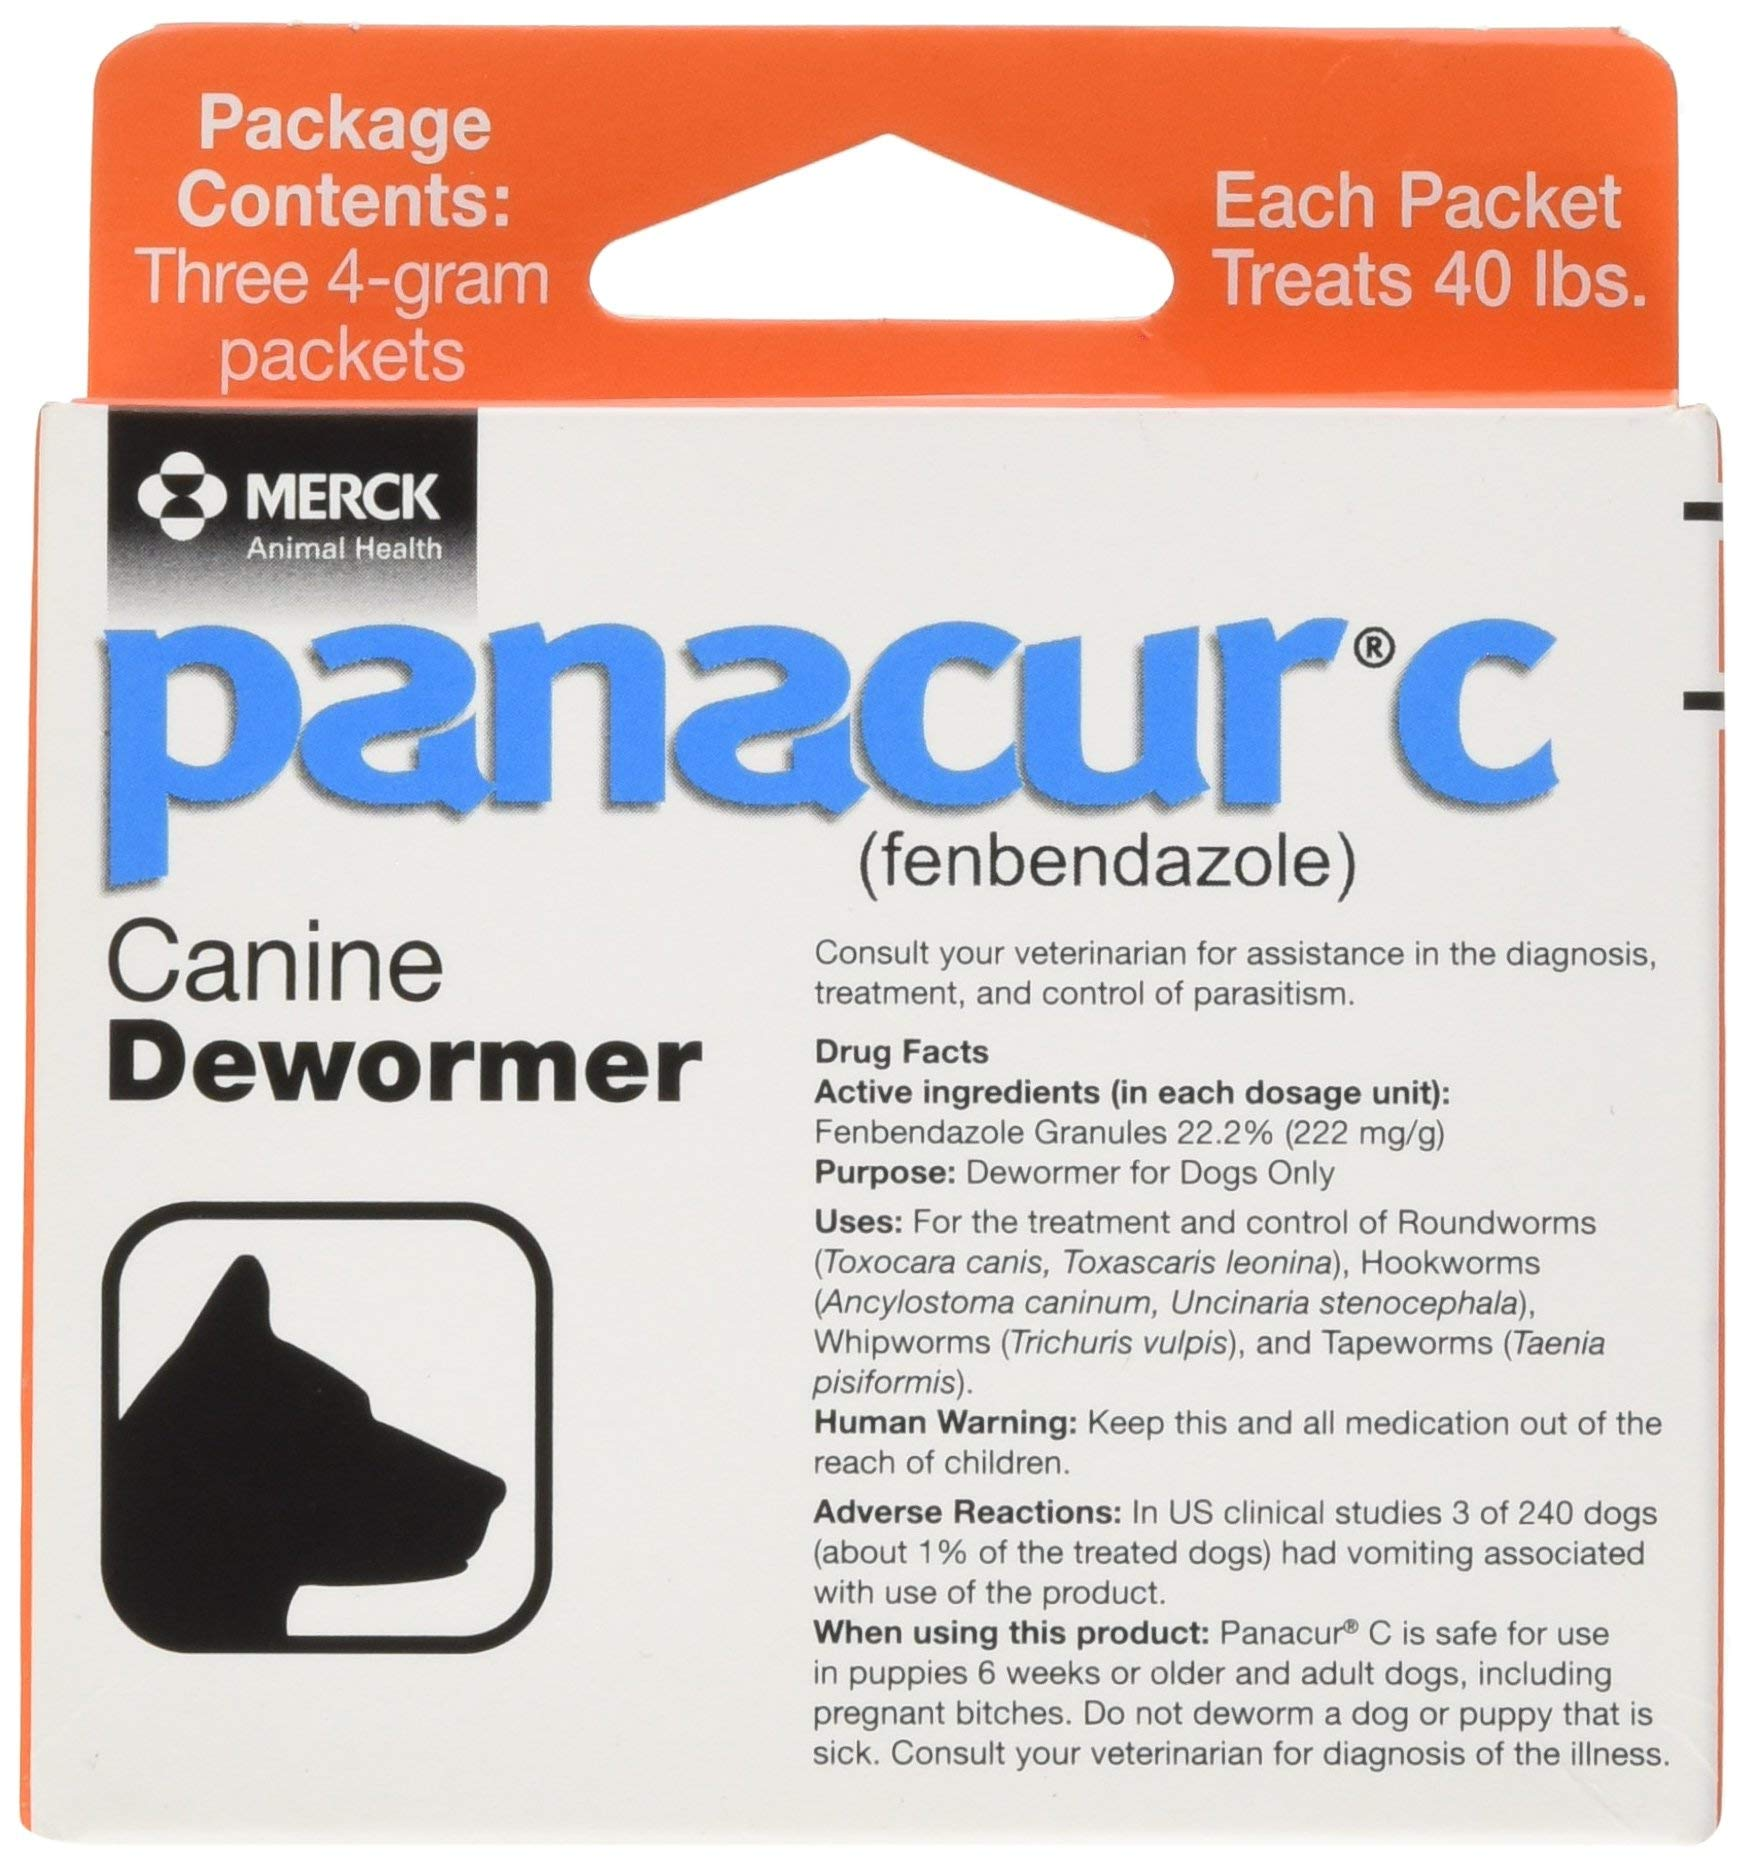 Panacur C Canine Dewormer, Net Wt. 12 Grams, Package Contents Three, 4 Gram Packets. Premium Pack by Panacur